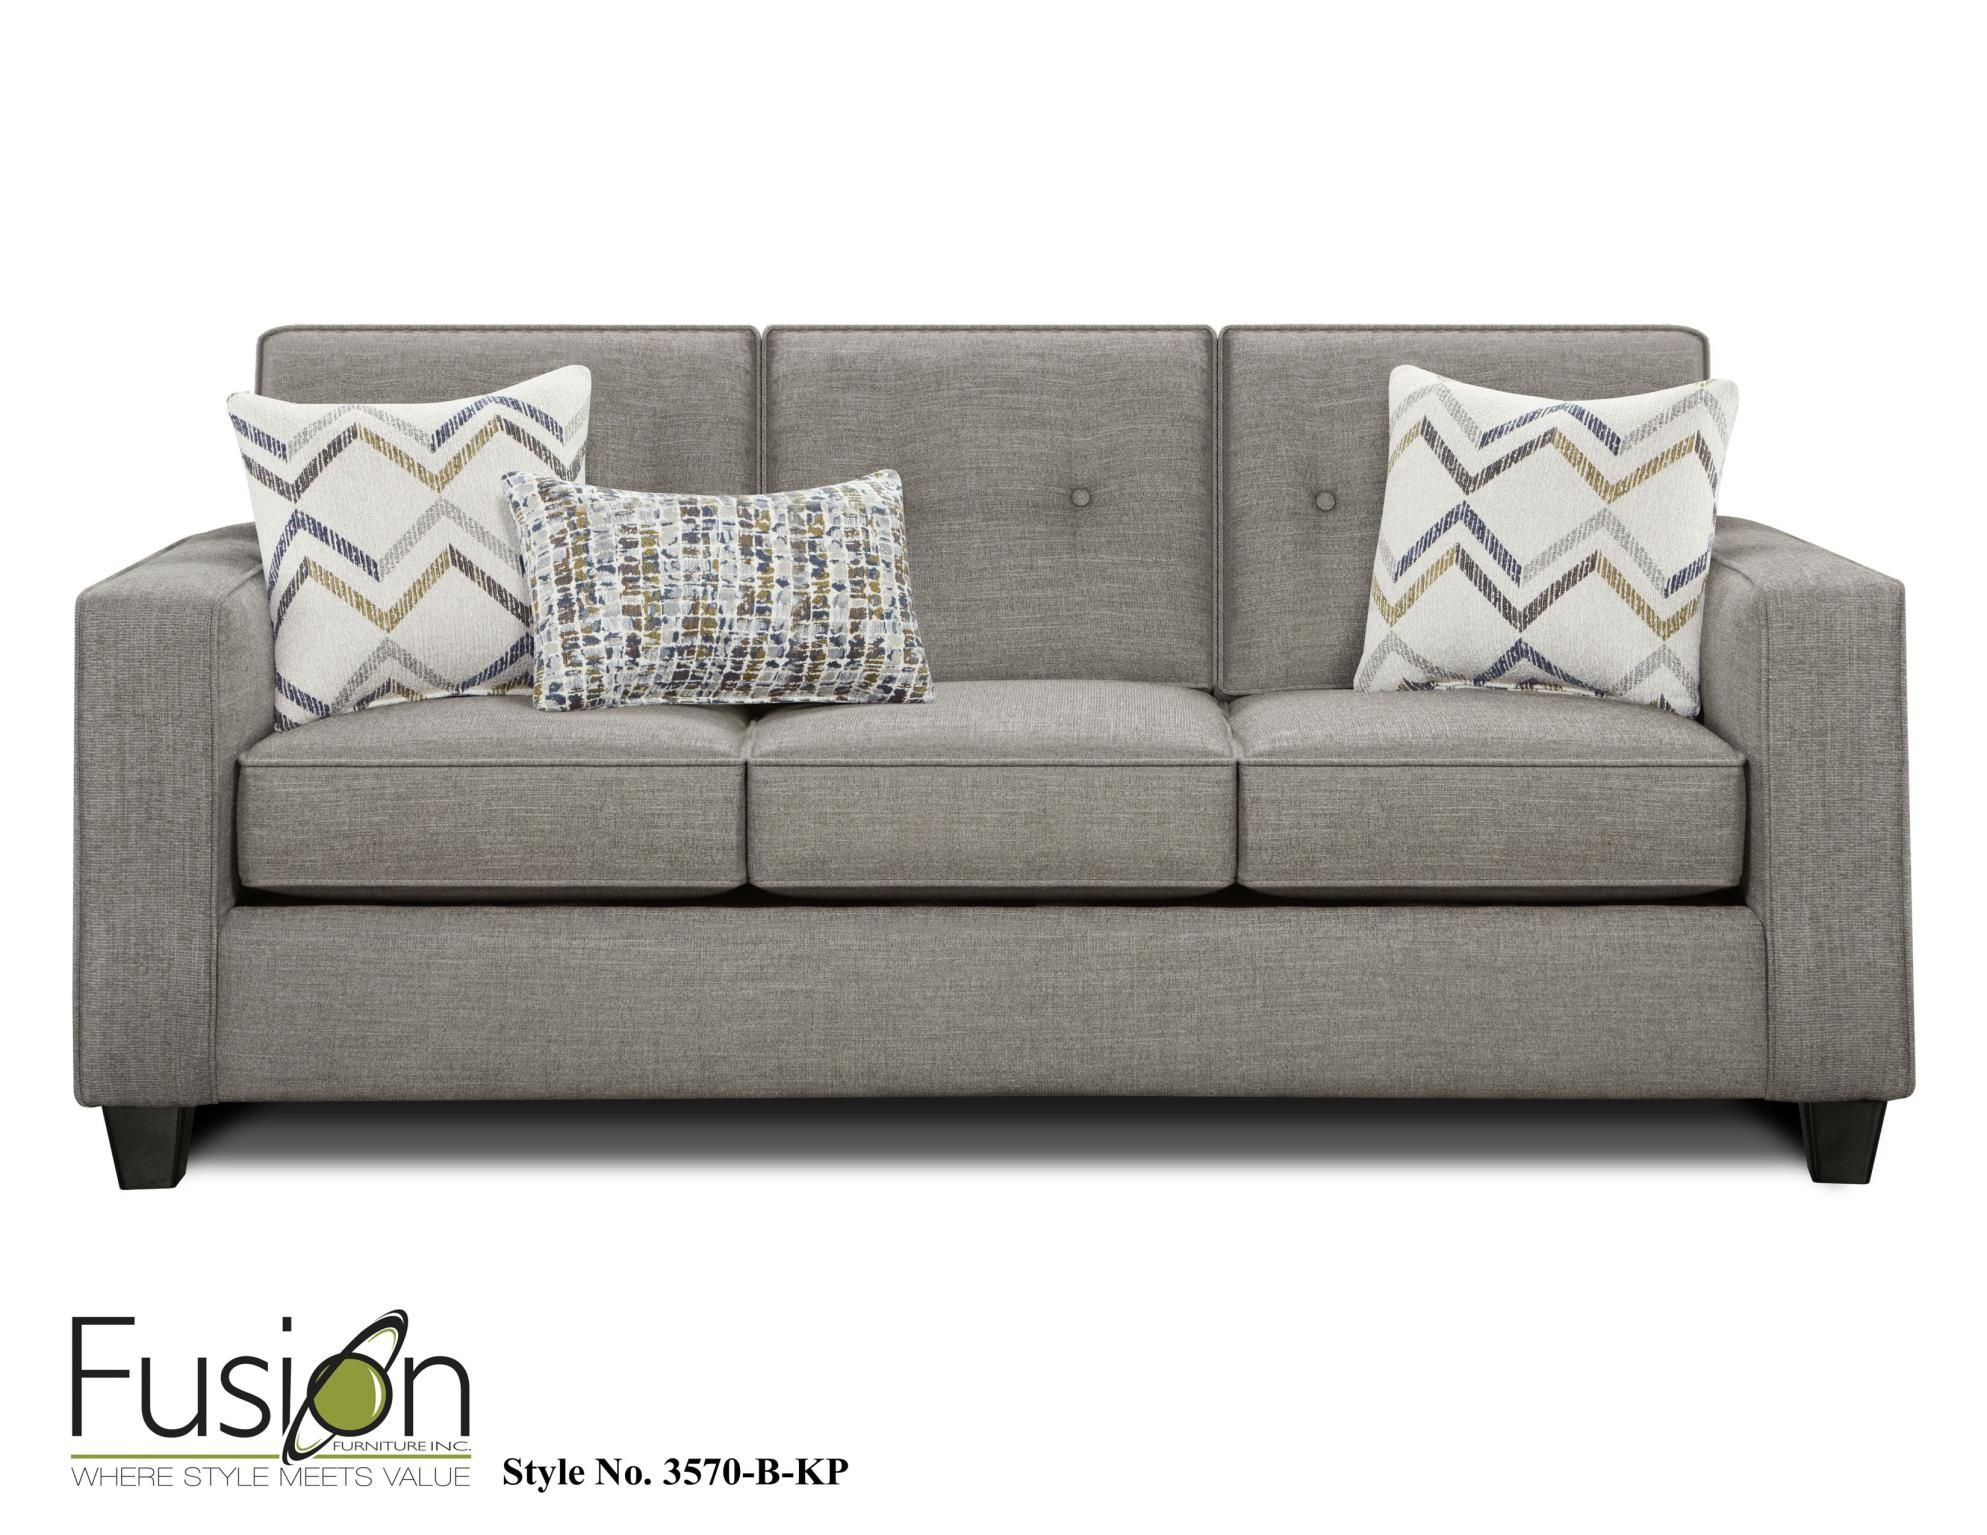 cort clearance furniture  used living room furniture